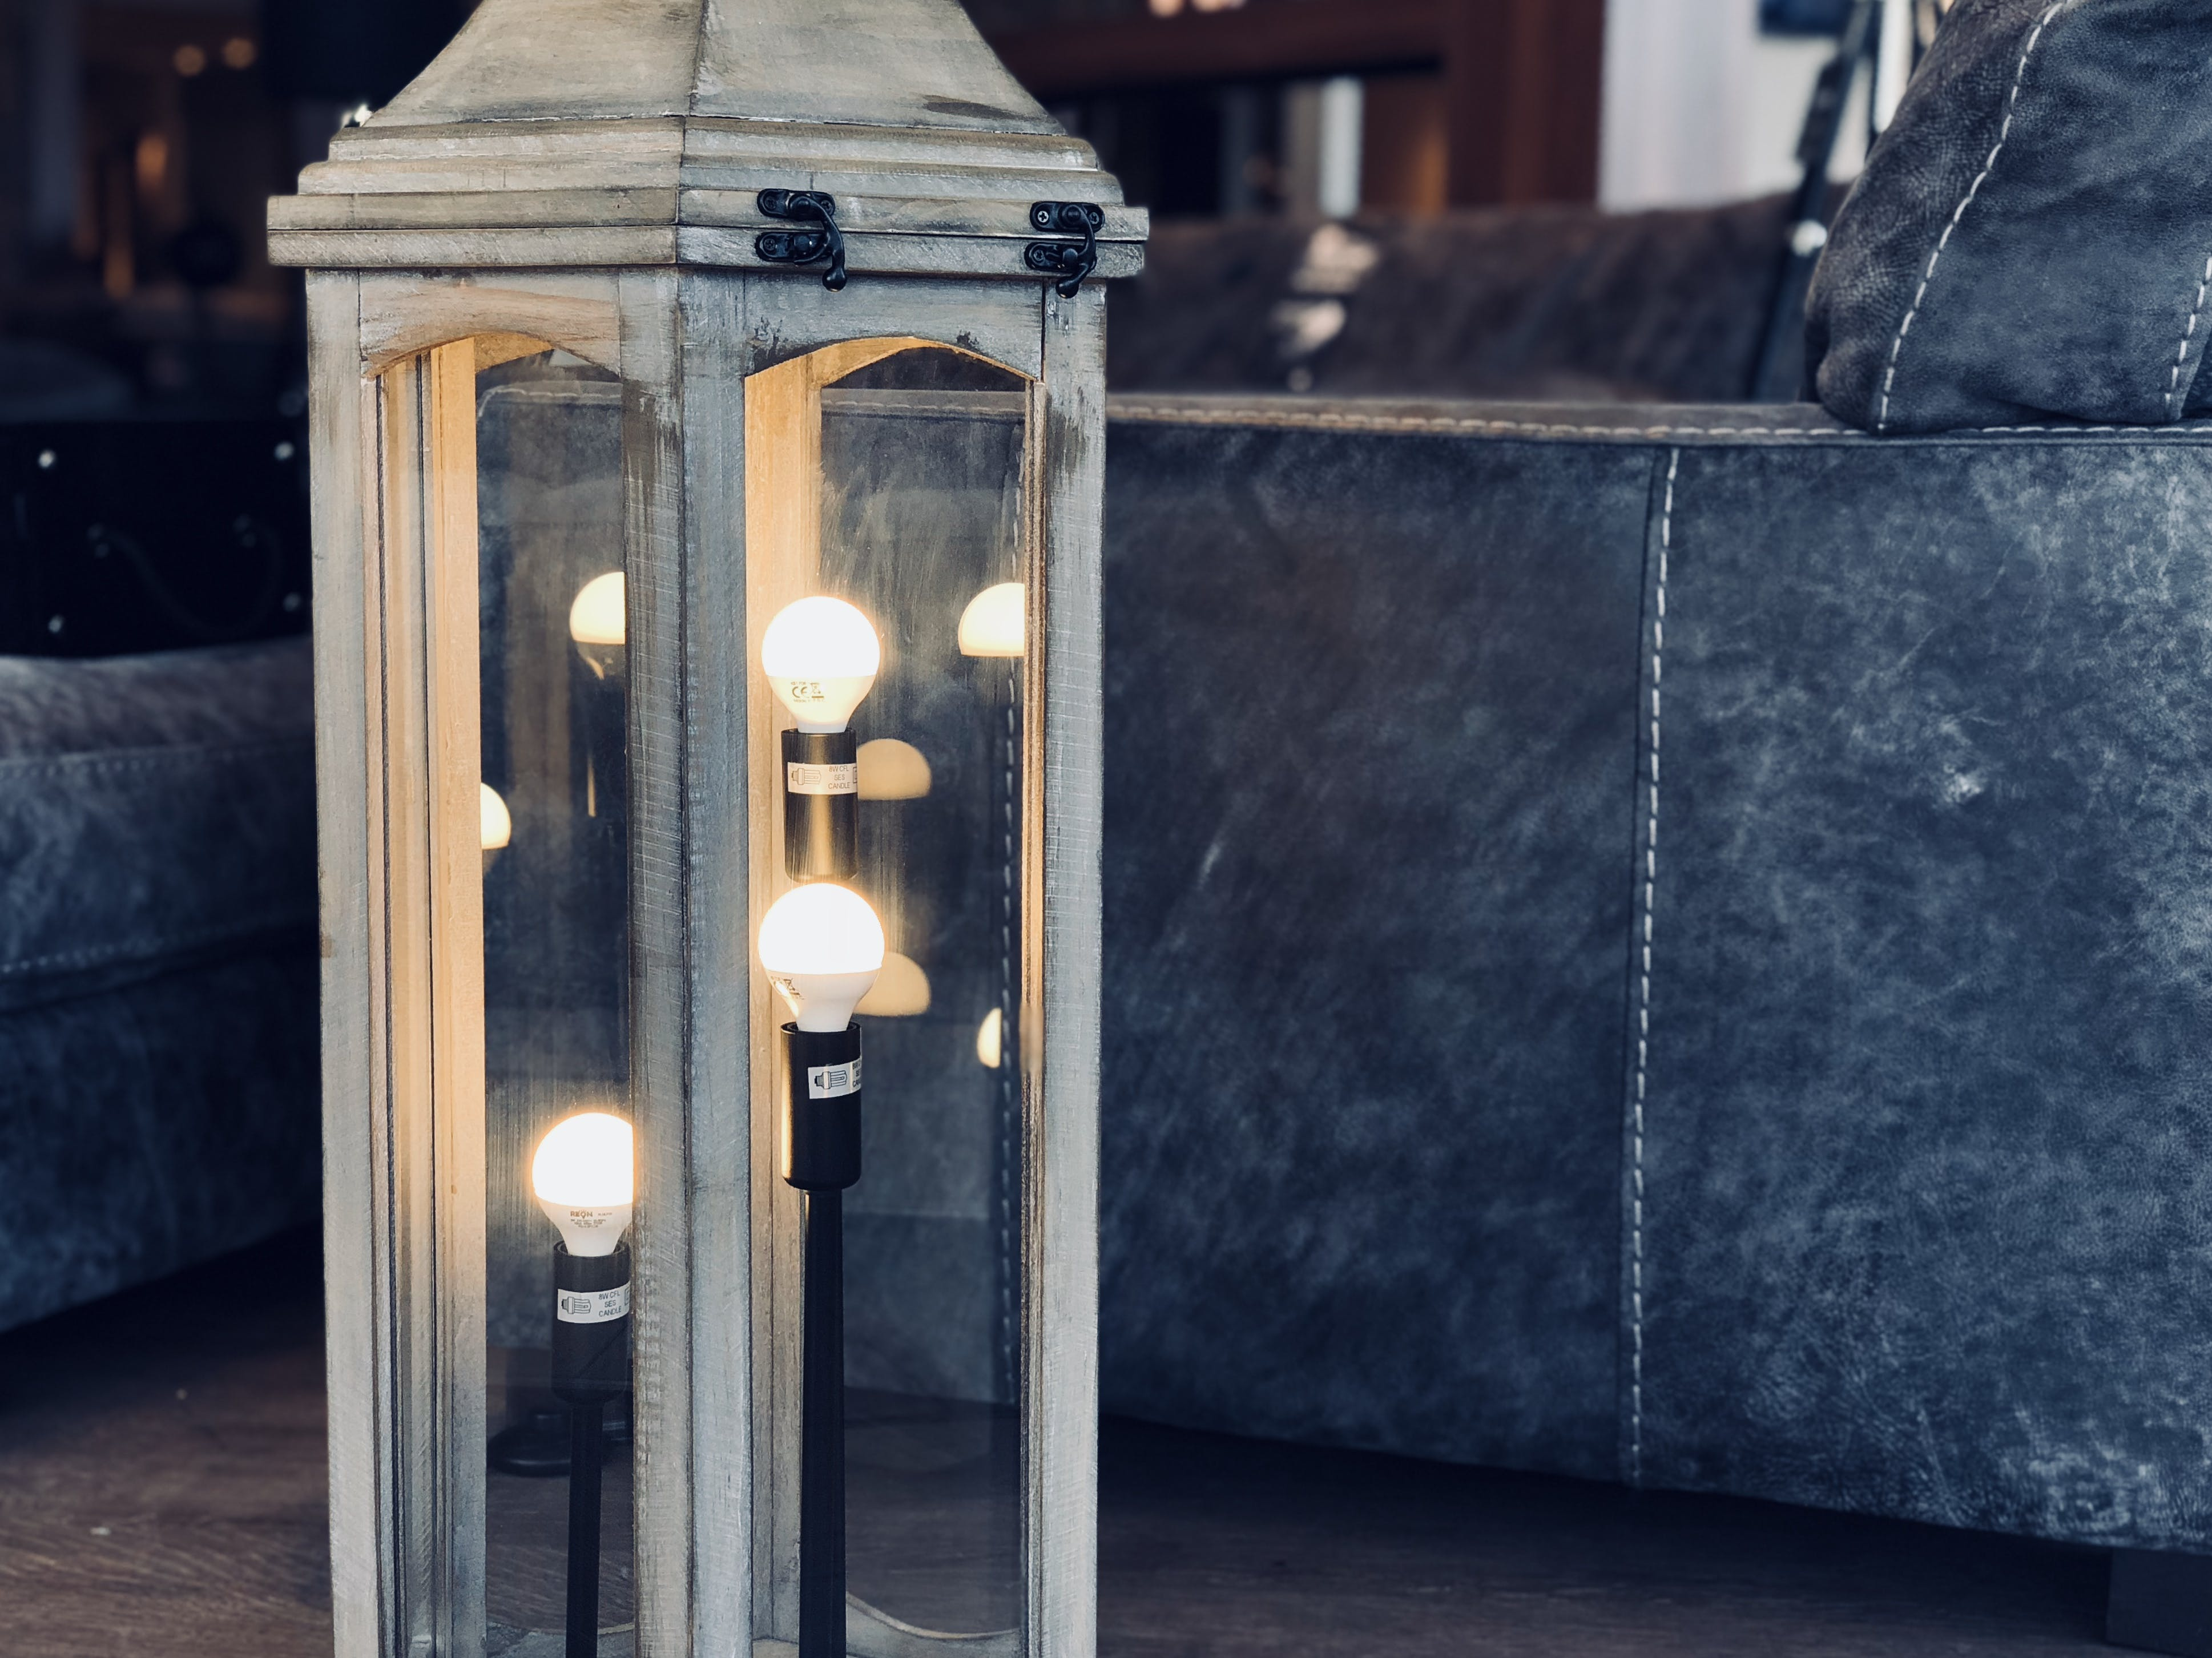 Free stock photo of lamp, reflections, chair, lantern